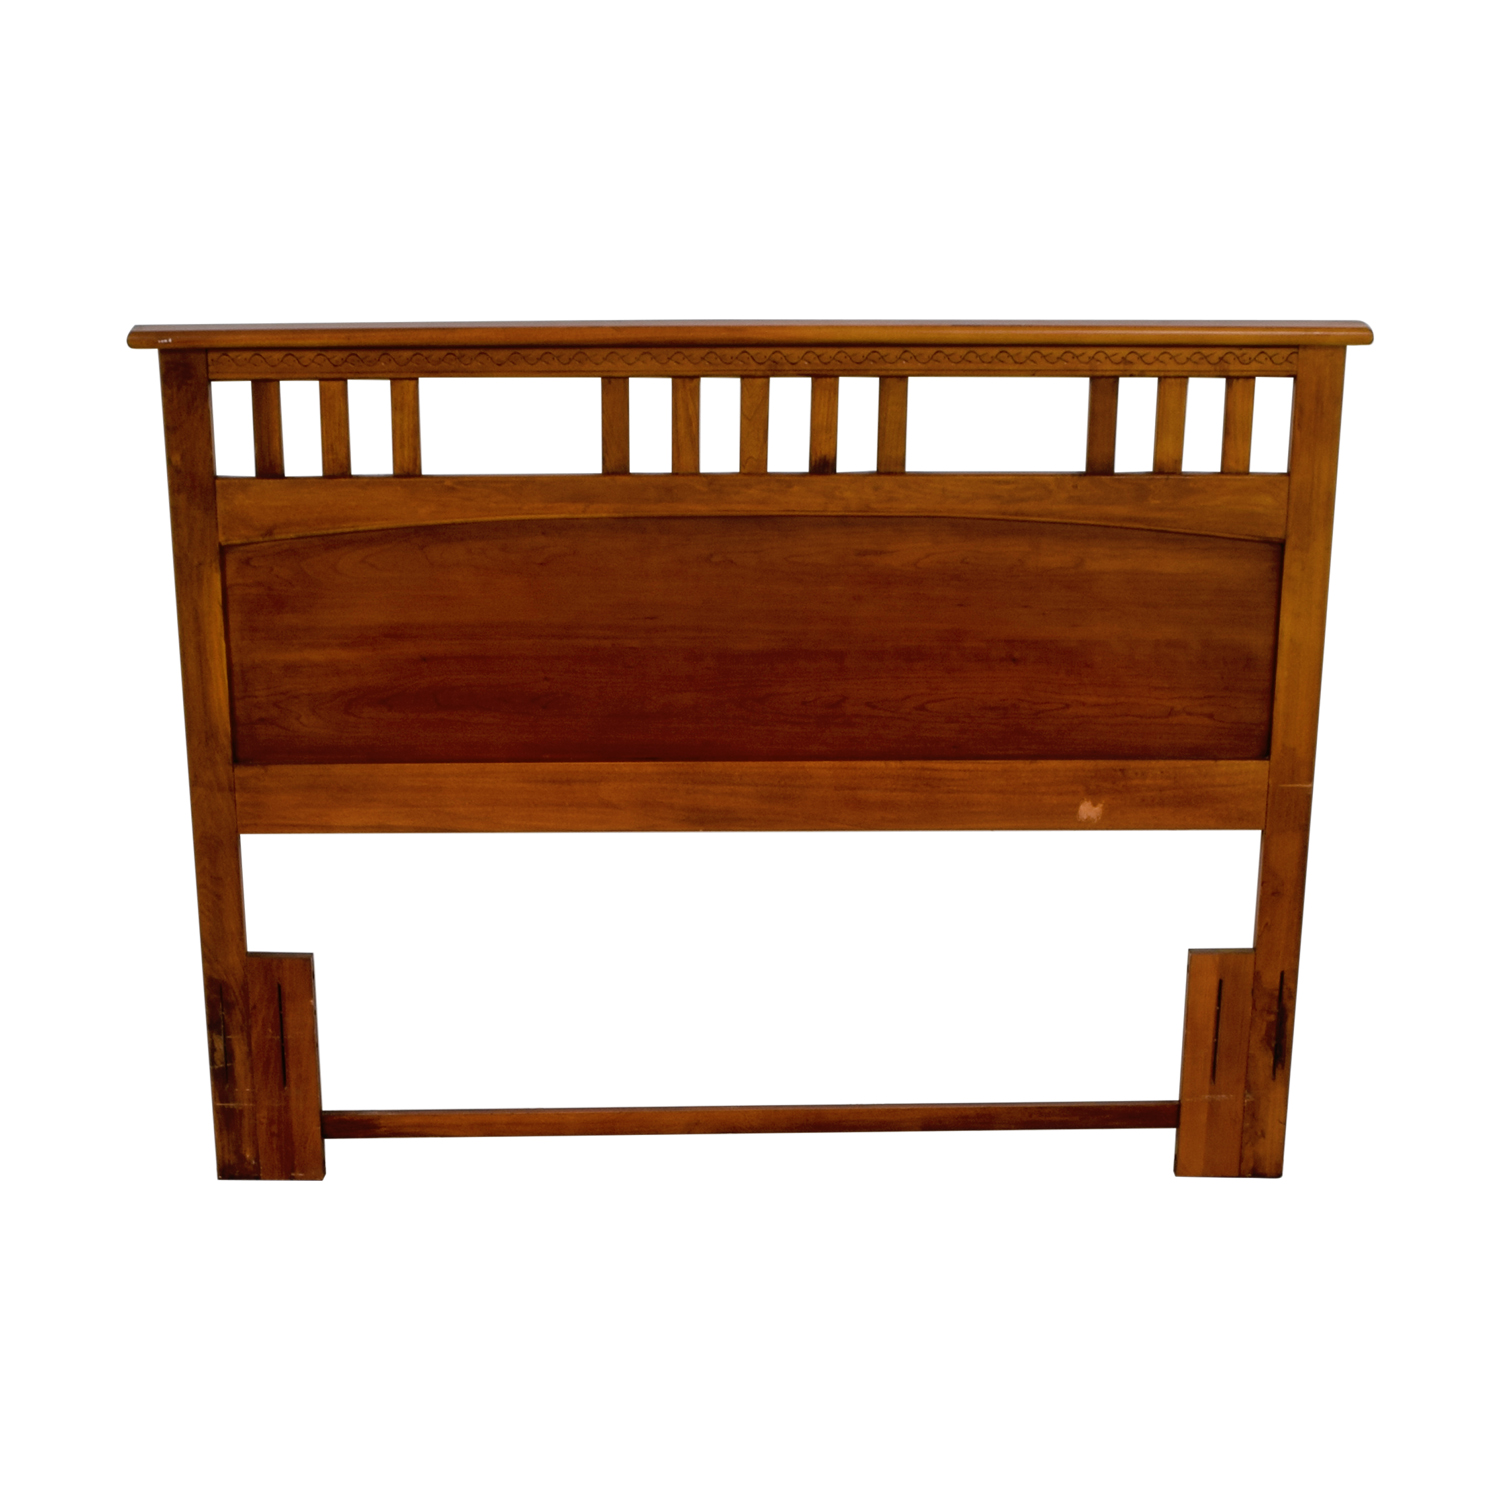 Vaughan Furniture Company Vaughan Furniture Company Wooden Queen Headboard